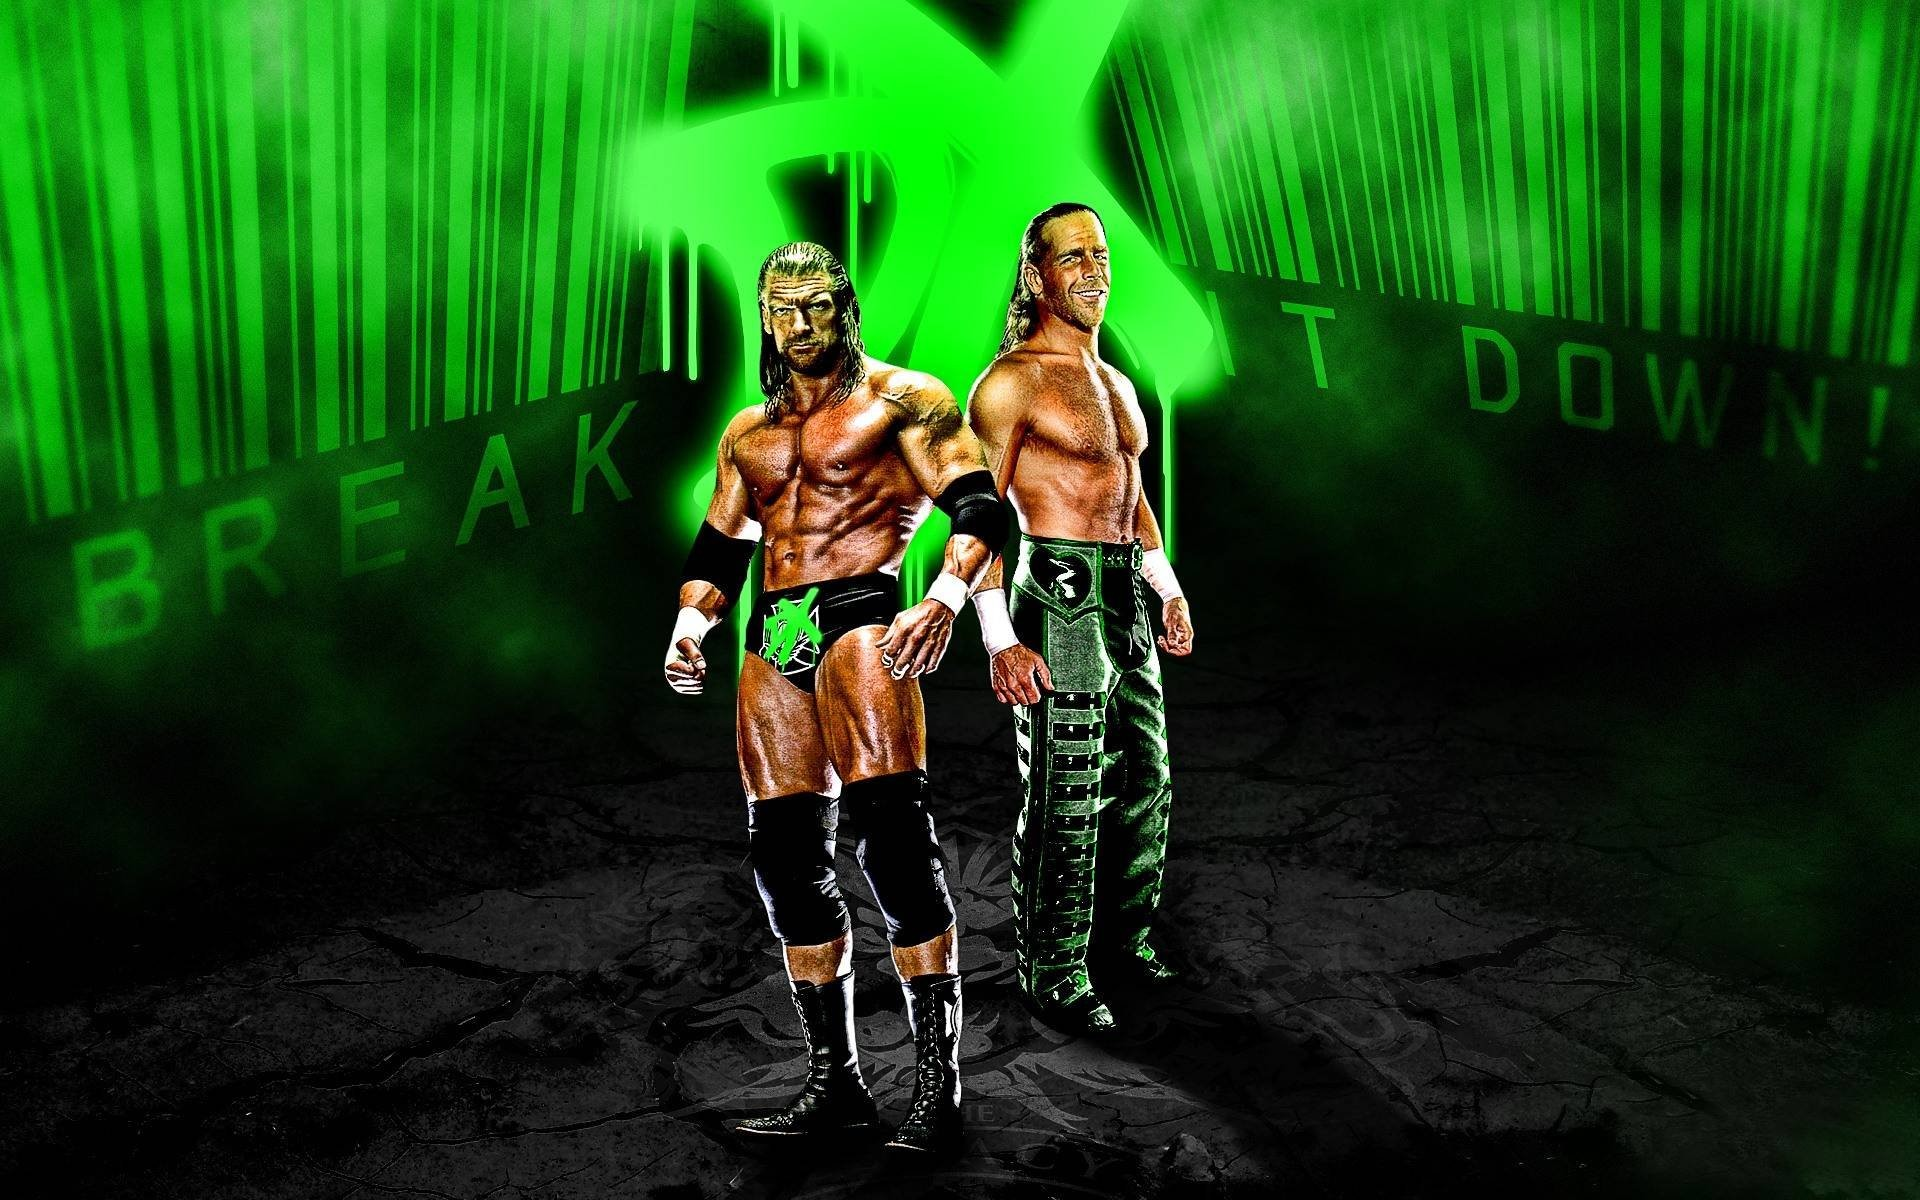 Wwe Dx Hd Wallpaper Wwe Dx Wallpapers 69 Images